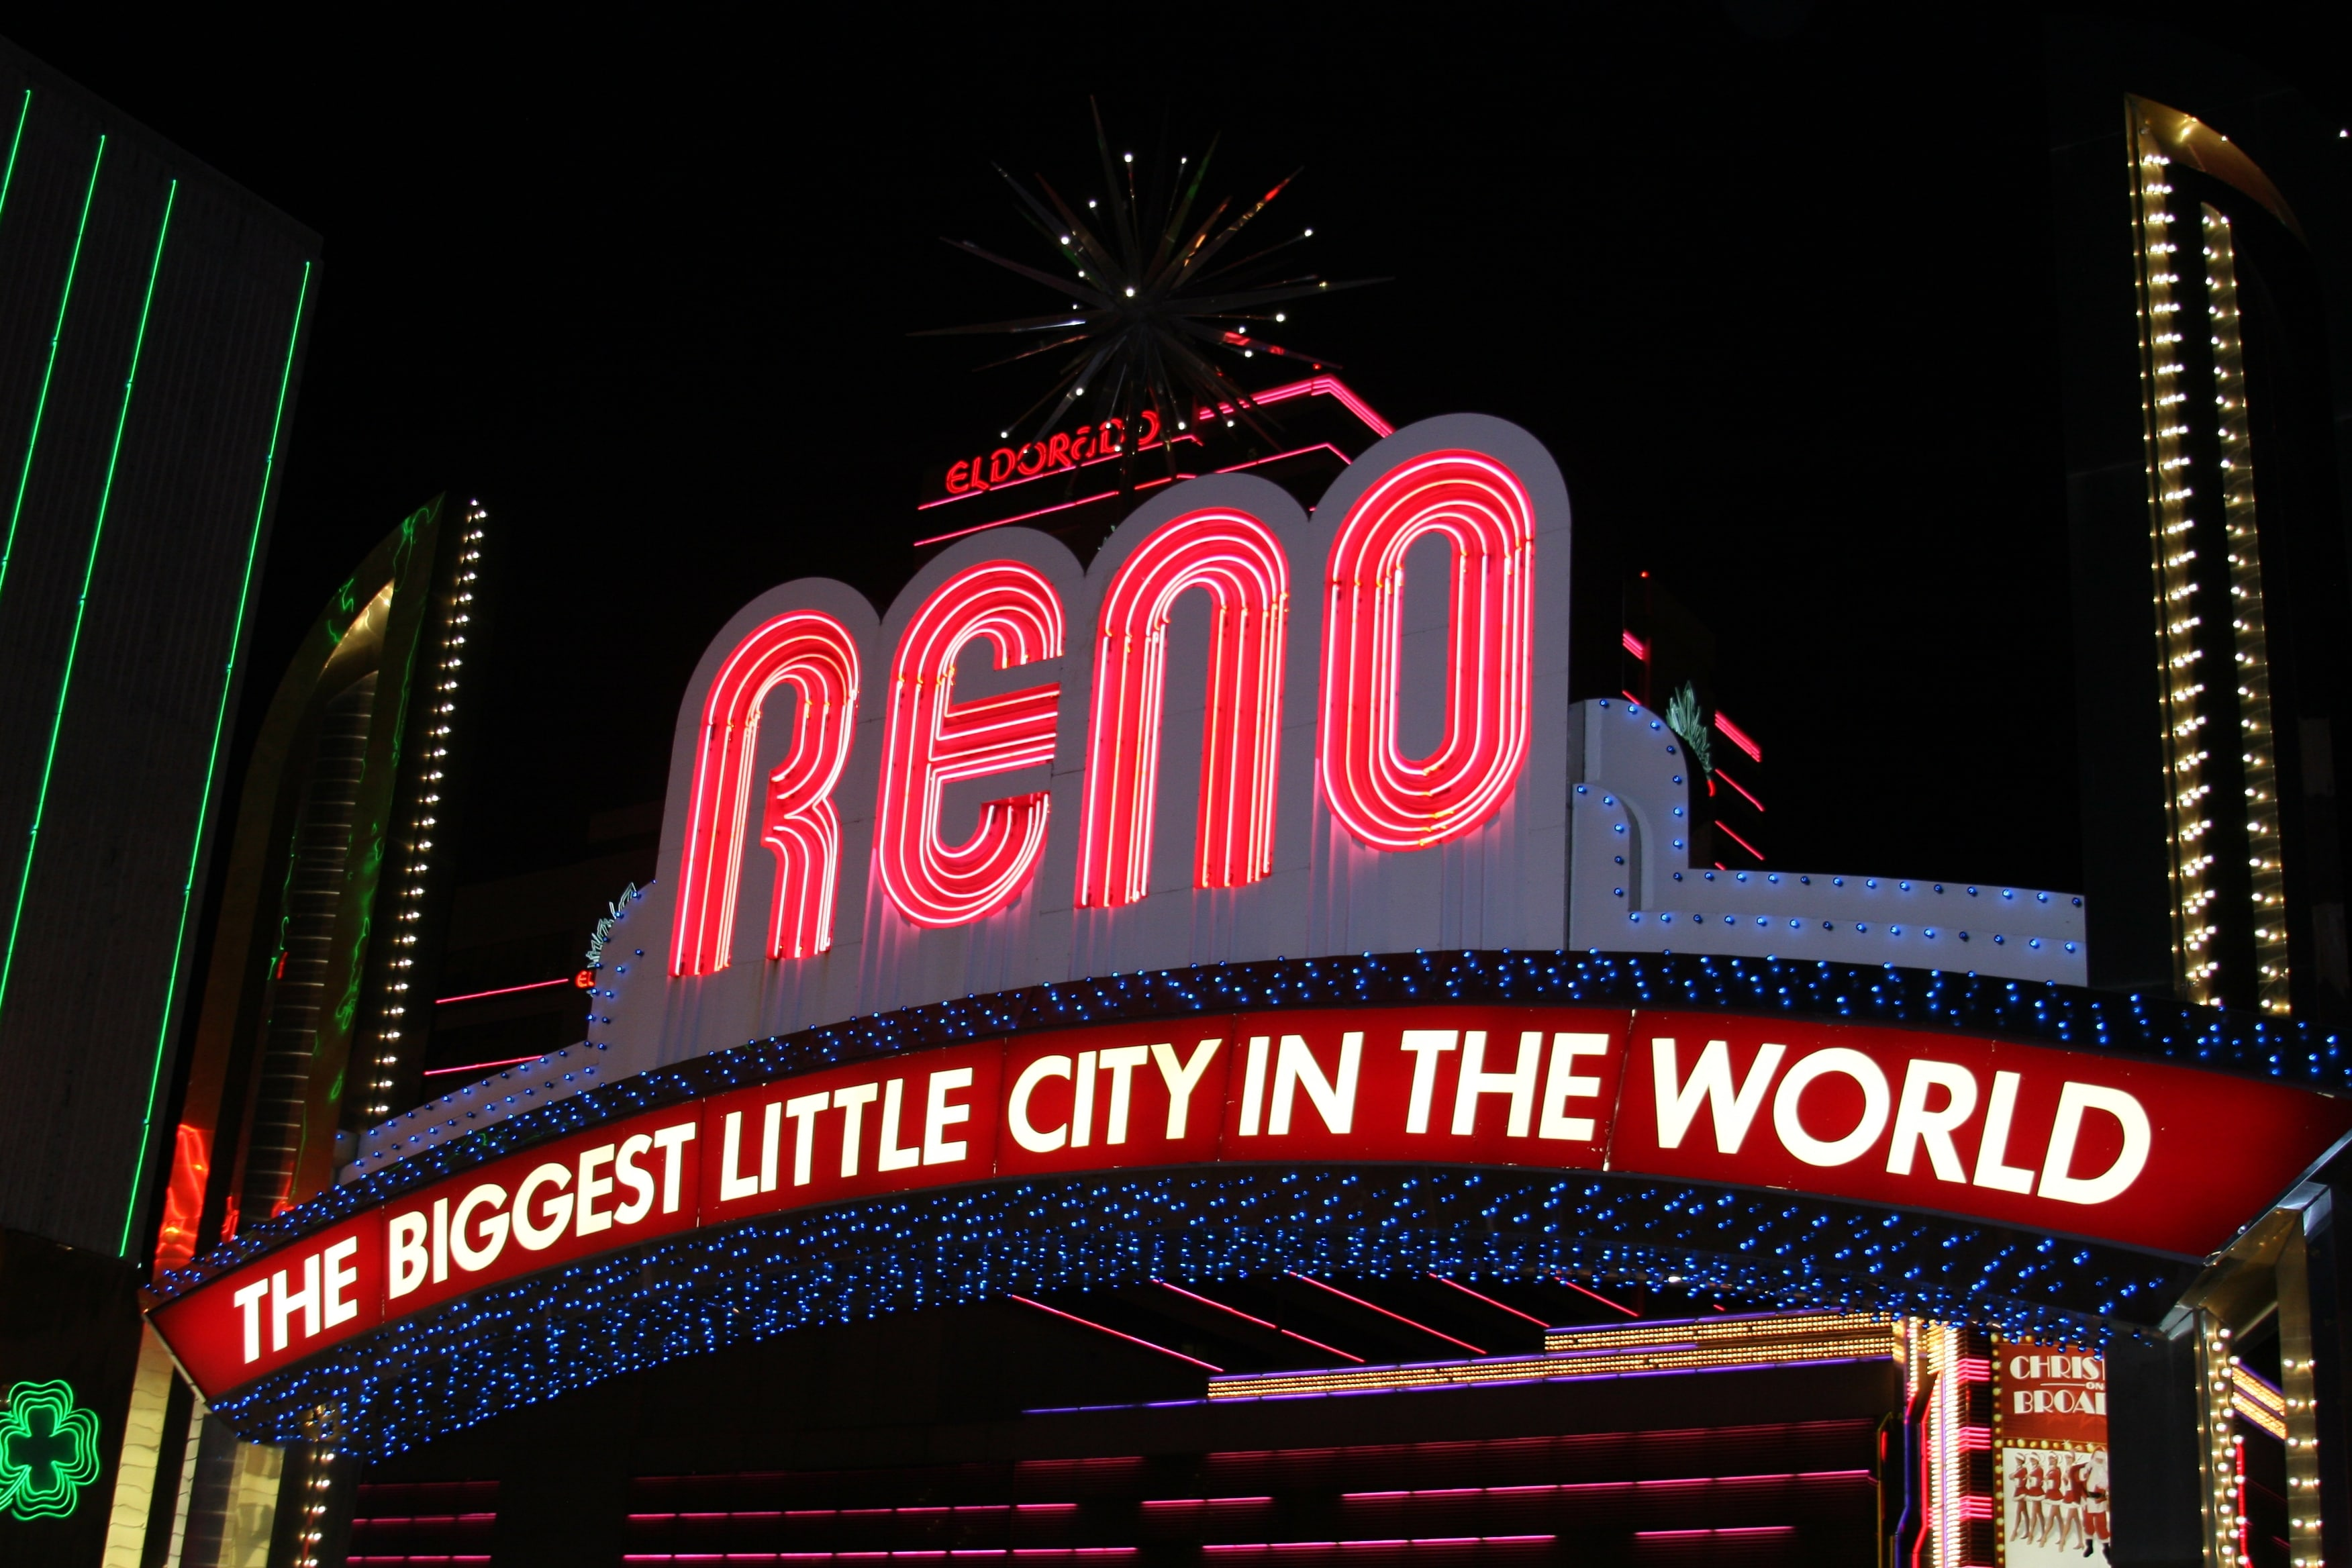 City of Reno arch